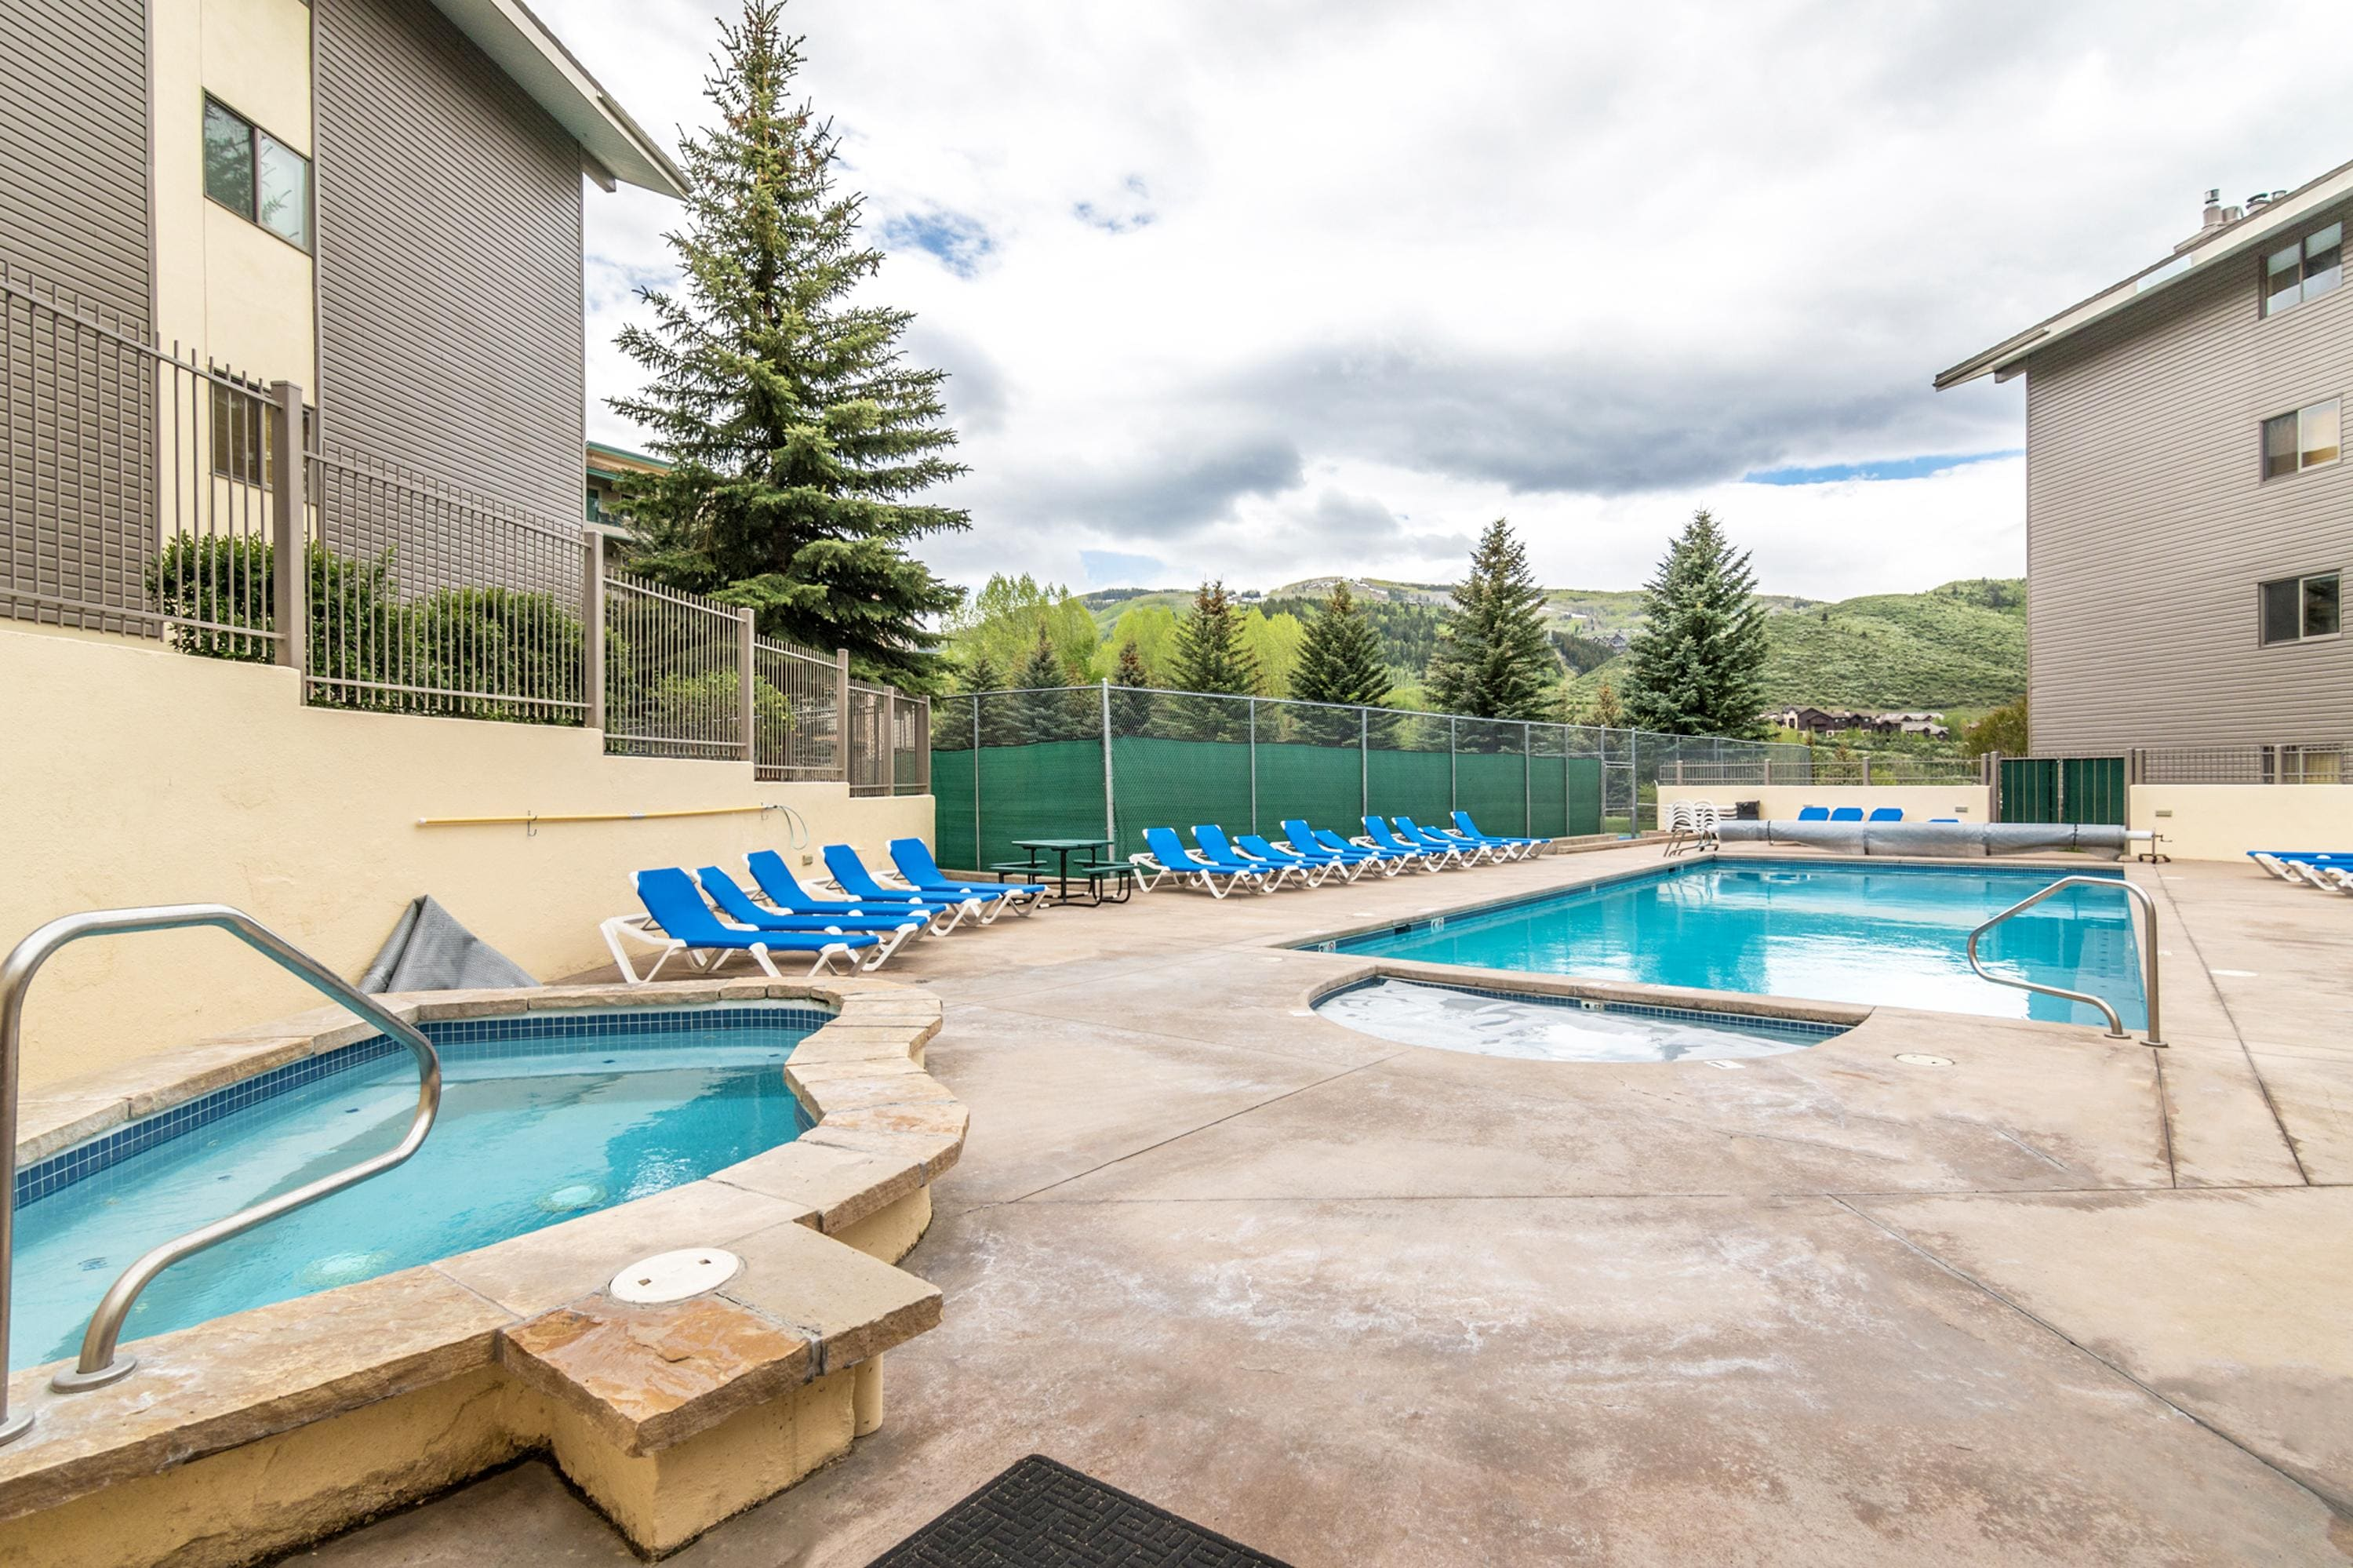 Relax by the community pool and hot tub, where plenty of loungers invite you to unwind.